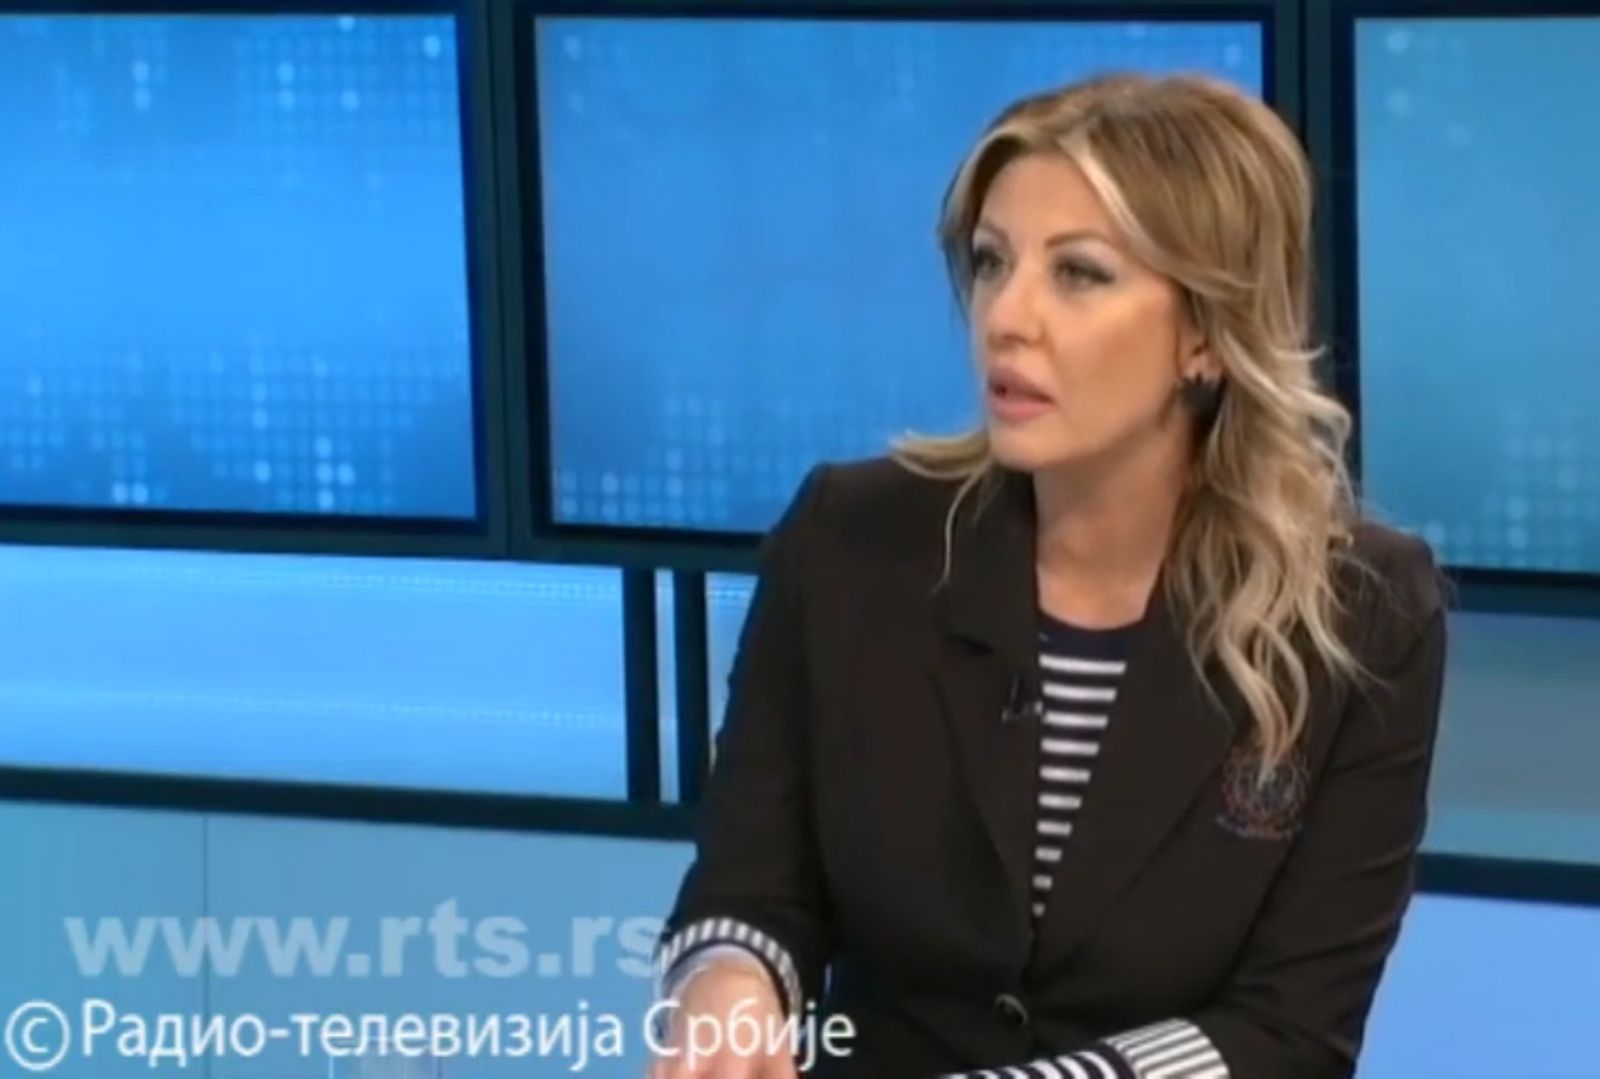 J. Joksimović: Serbia agreed to new EU methodology long time ago